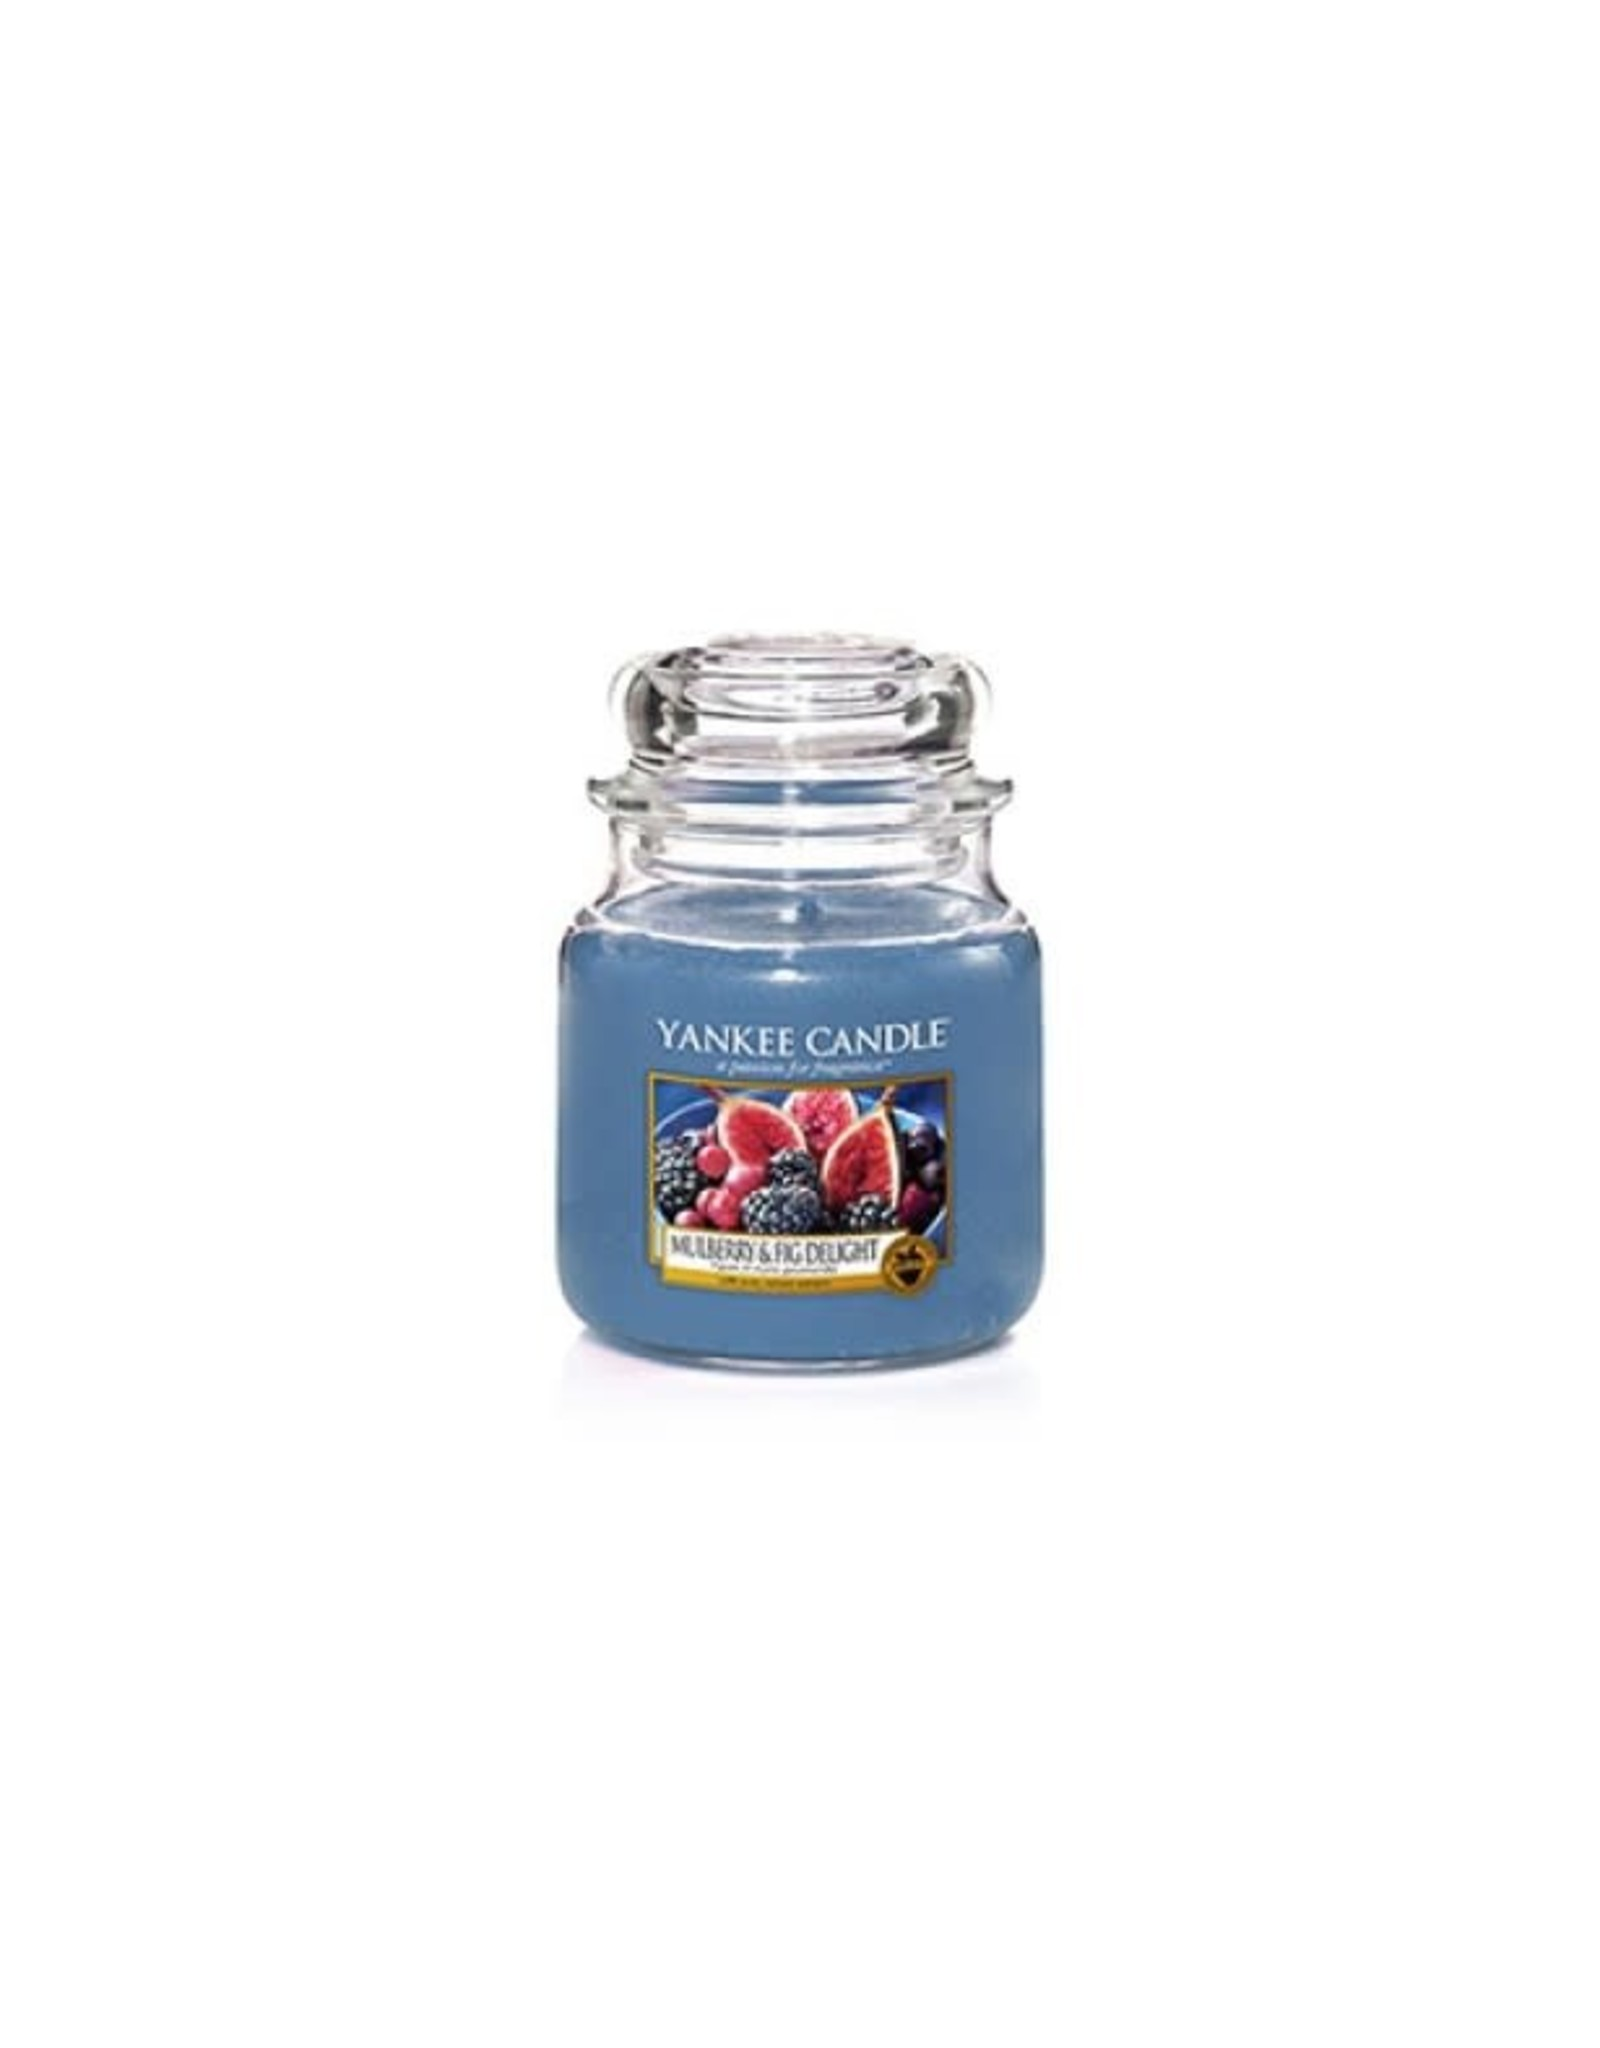 Yankee Candle Mulberry&FiG Yankee Candle